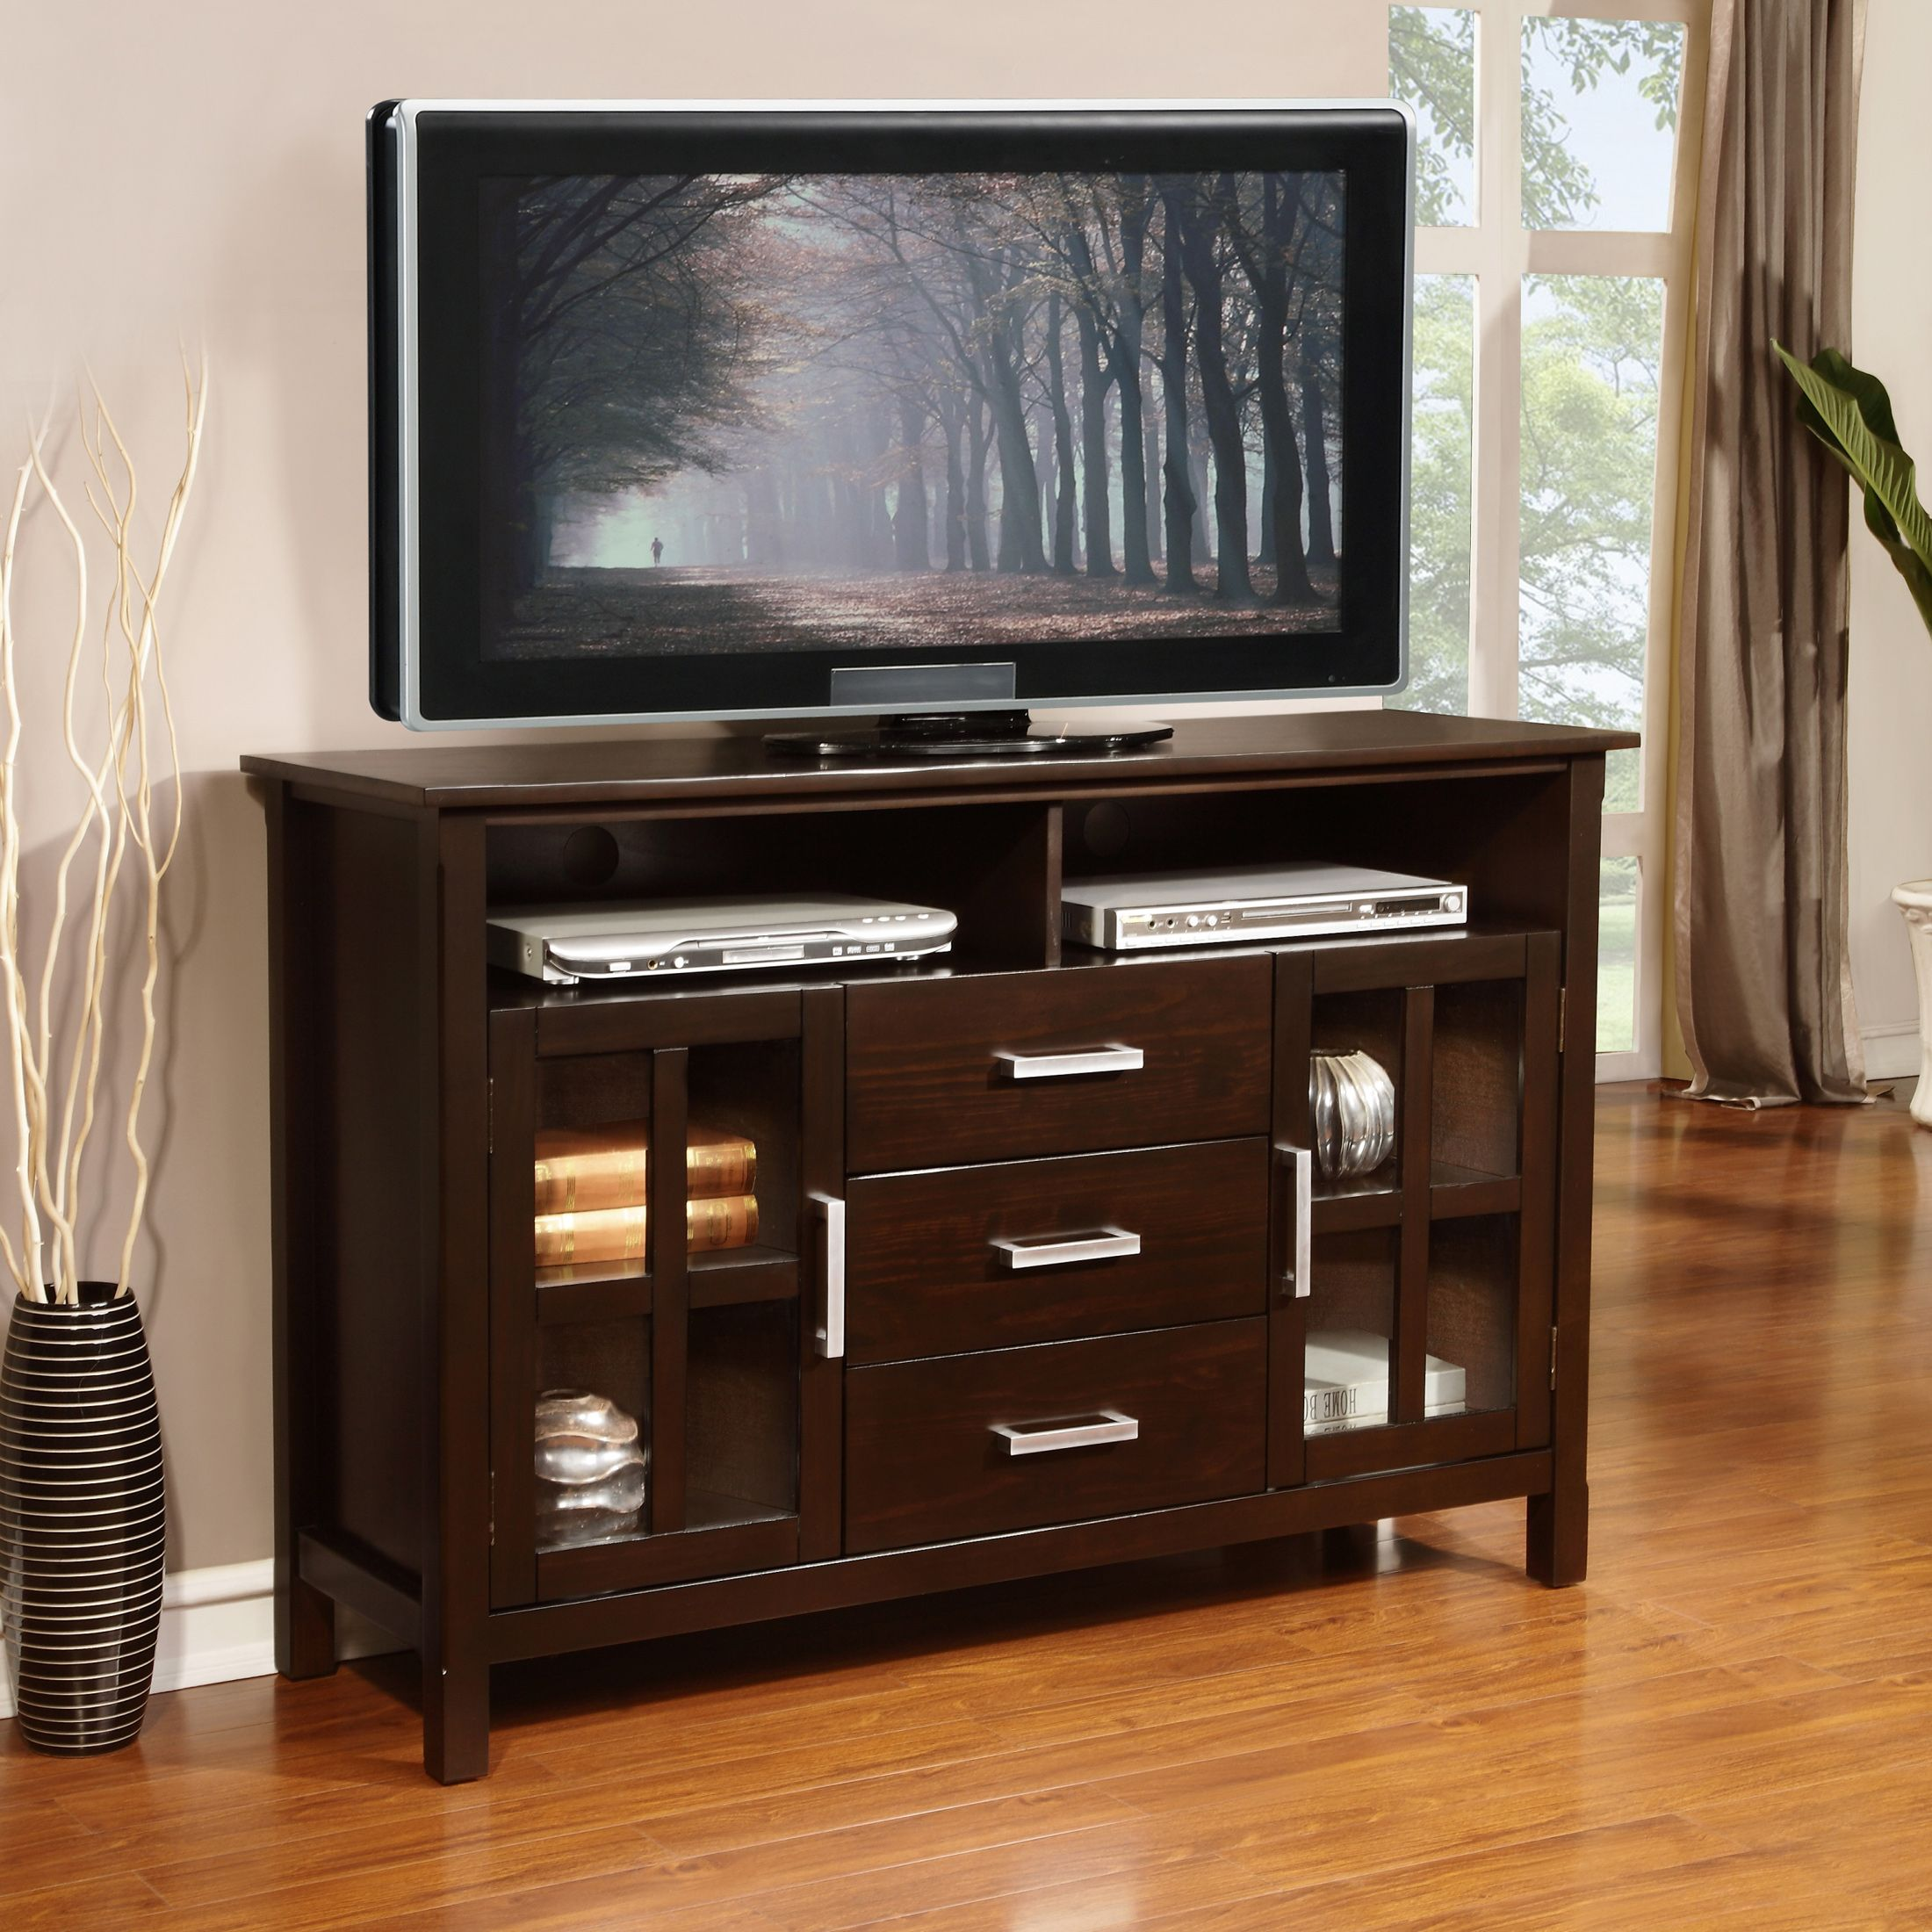 Complete Your Living Room With The Contemporary Elegance Of The Waterloo Tall Tv Stand A Large Central Top Open Area Tall Tv Stands Simpli Home Tv Stand Wood